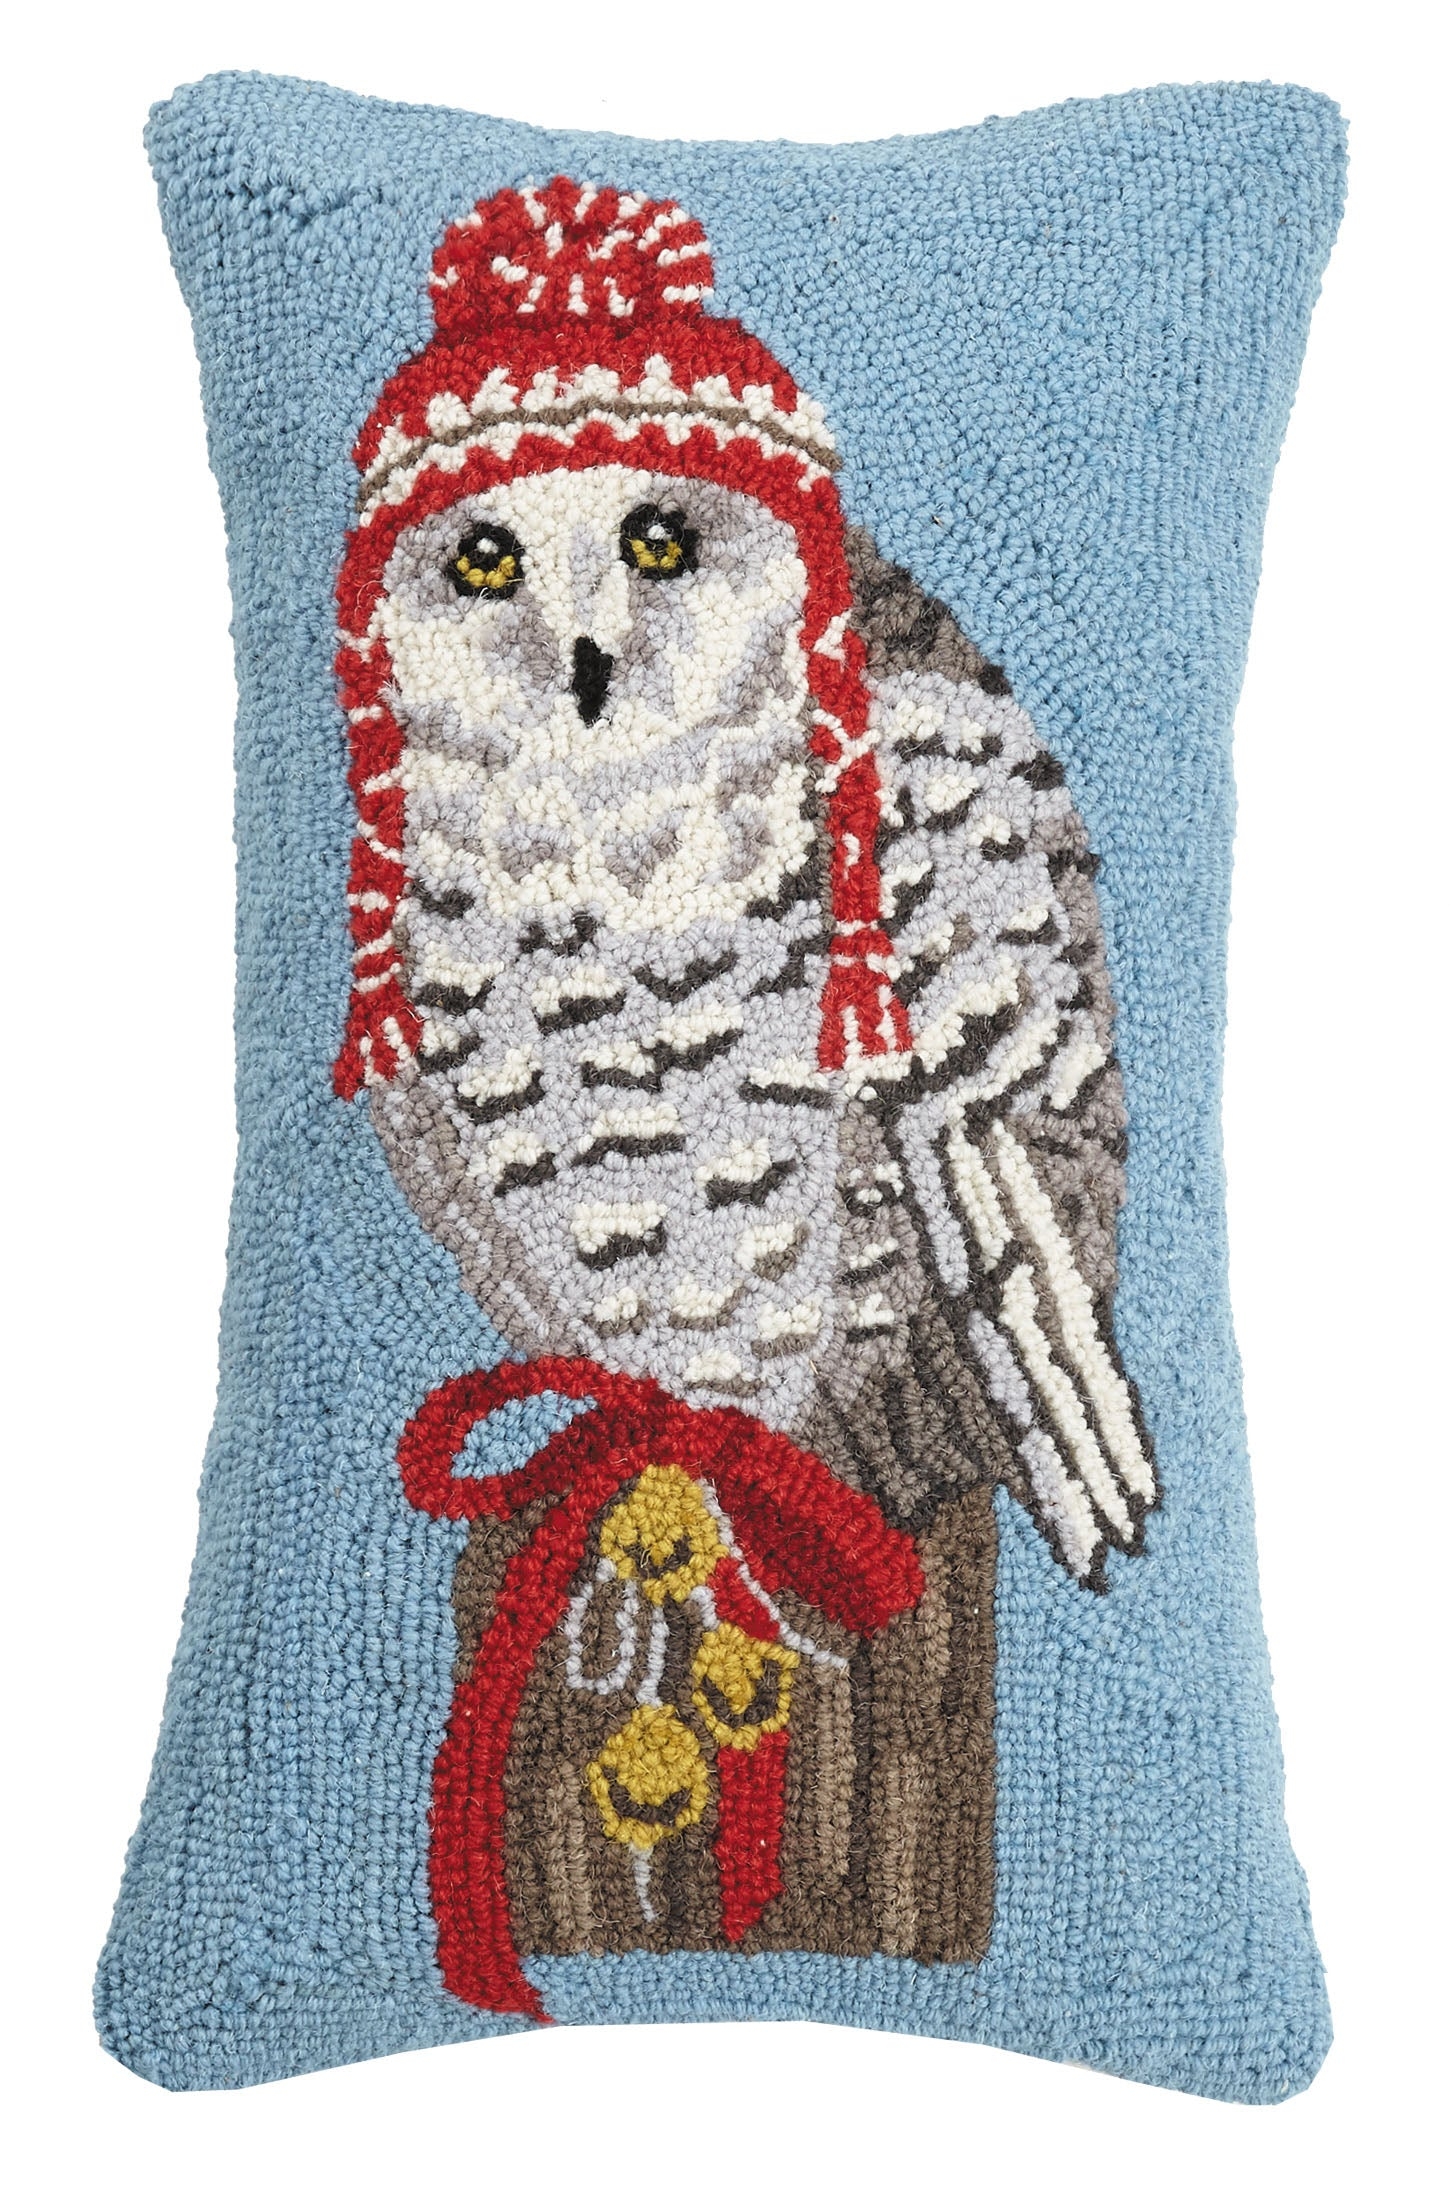 Snowy Owl with Hat Hooked Pillow